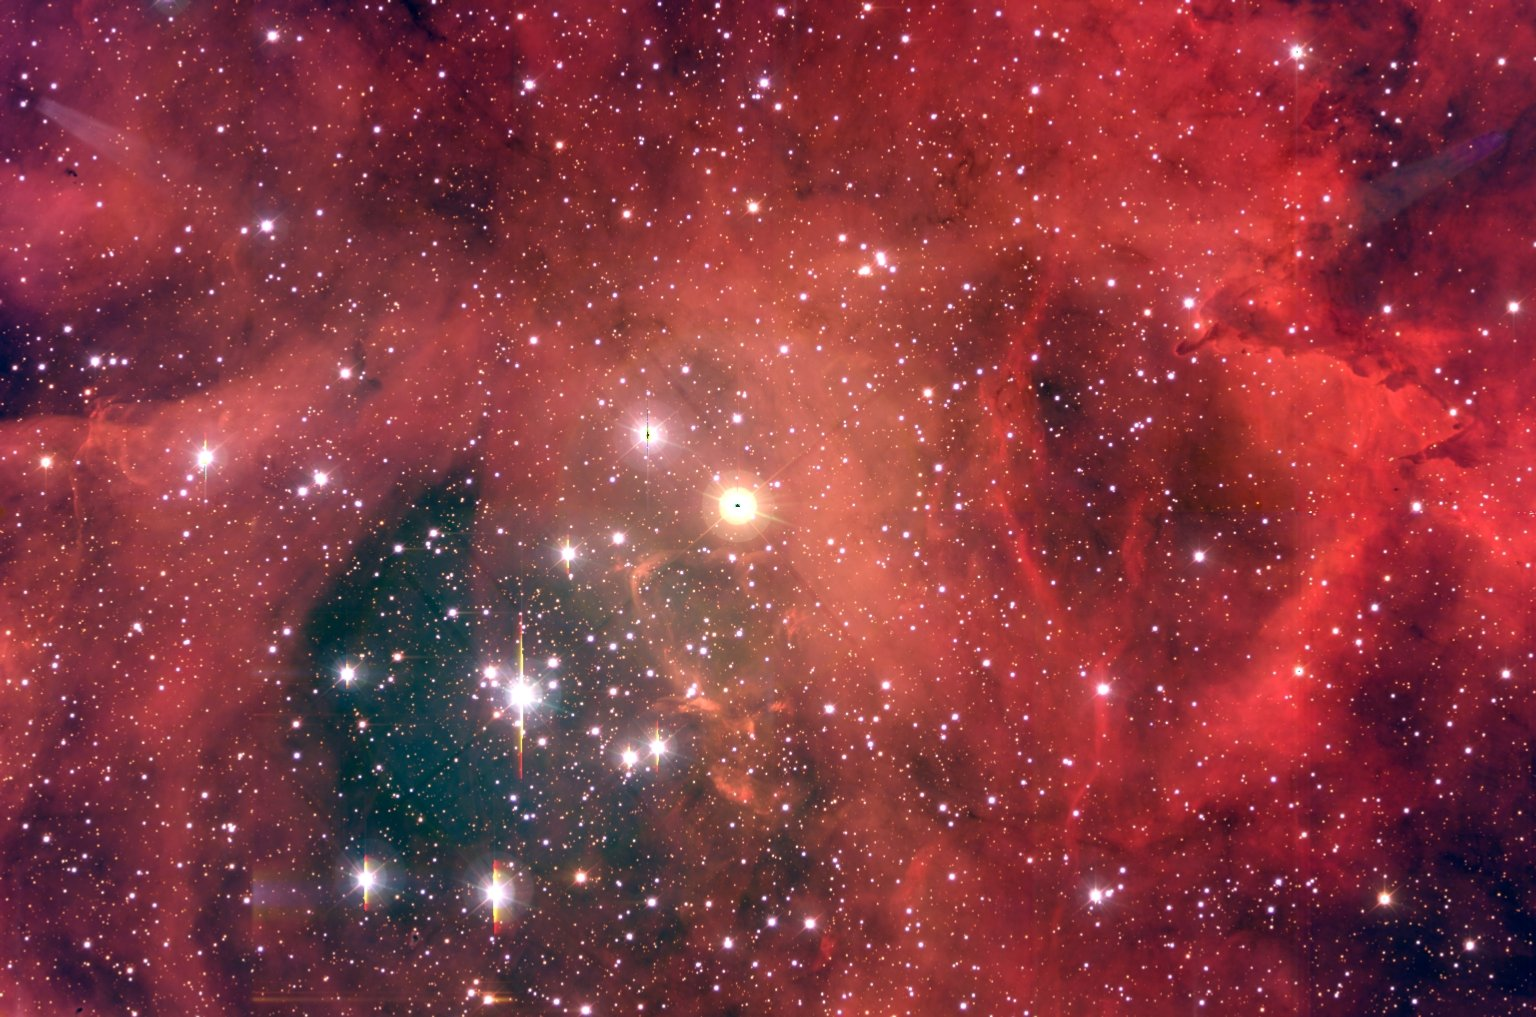 NGC 2244: A Star Cluster in the Rosette Nebula